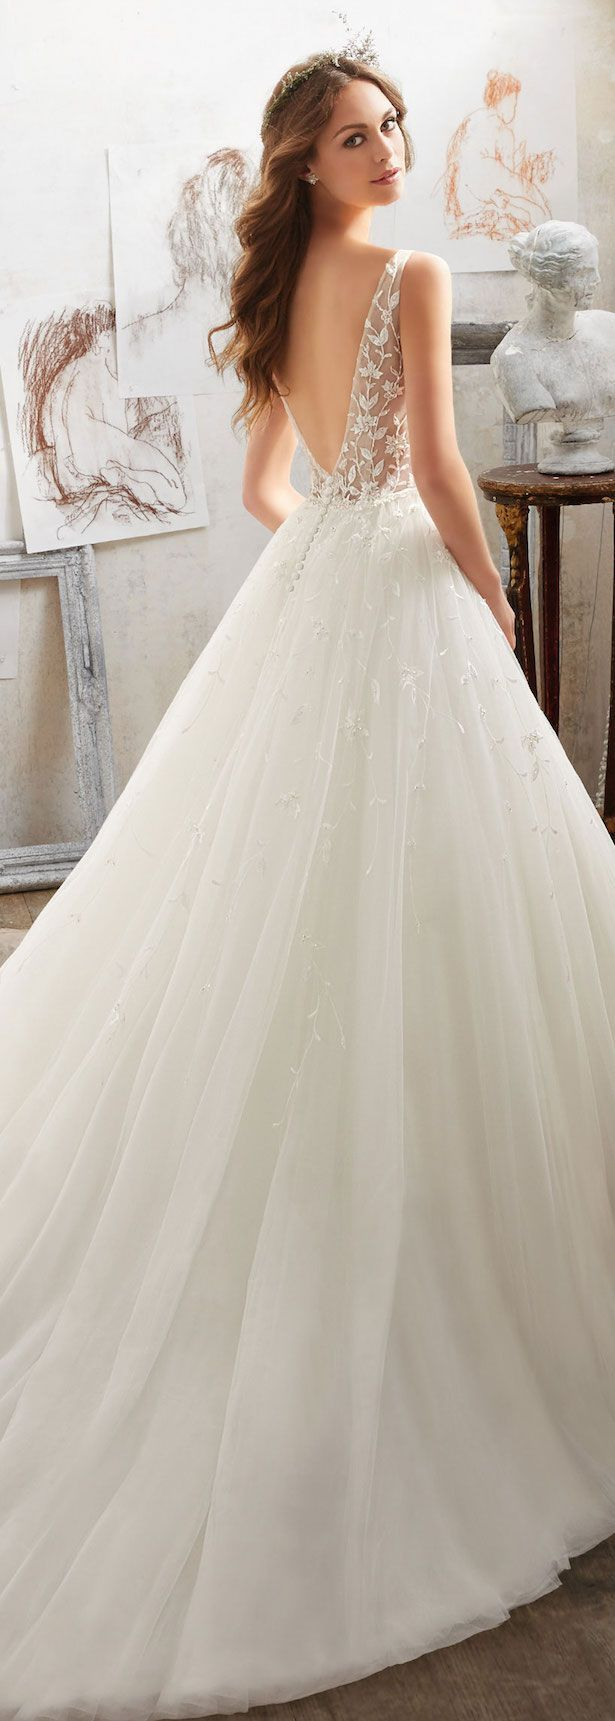 Mori lee madeline gardner wedding dress  Mori Lee by Madeline Gardner Wedding Dress Collection  Blu Spring